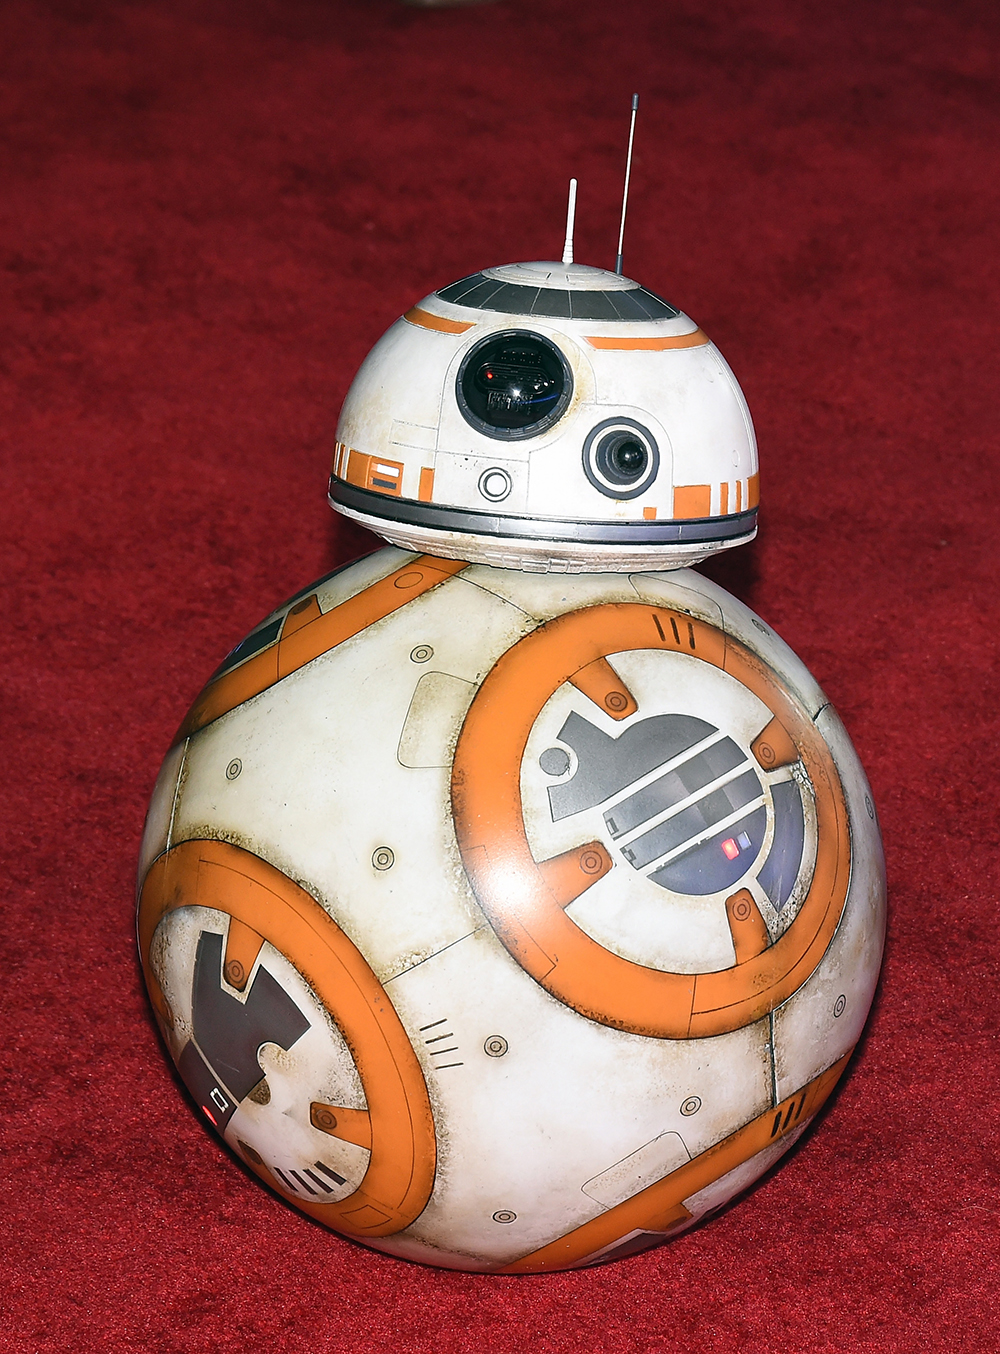 """HOLLYWOOD, CA - DECEMBER 14: BB-8 rolls down the red carpet at the premiere of Walt Disney Pictures and Lucasfilm's """"Star Wars: The Force Awakens"""" at the Dolby Theatre on December 14, 2015 in Hollywood, California. Ethan Miller/Getty Images/AFP"""